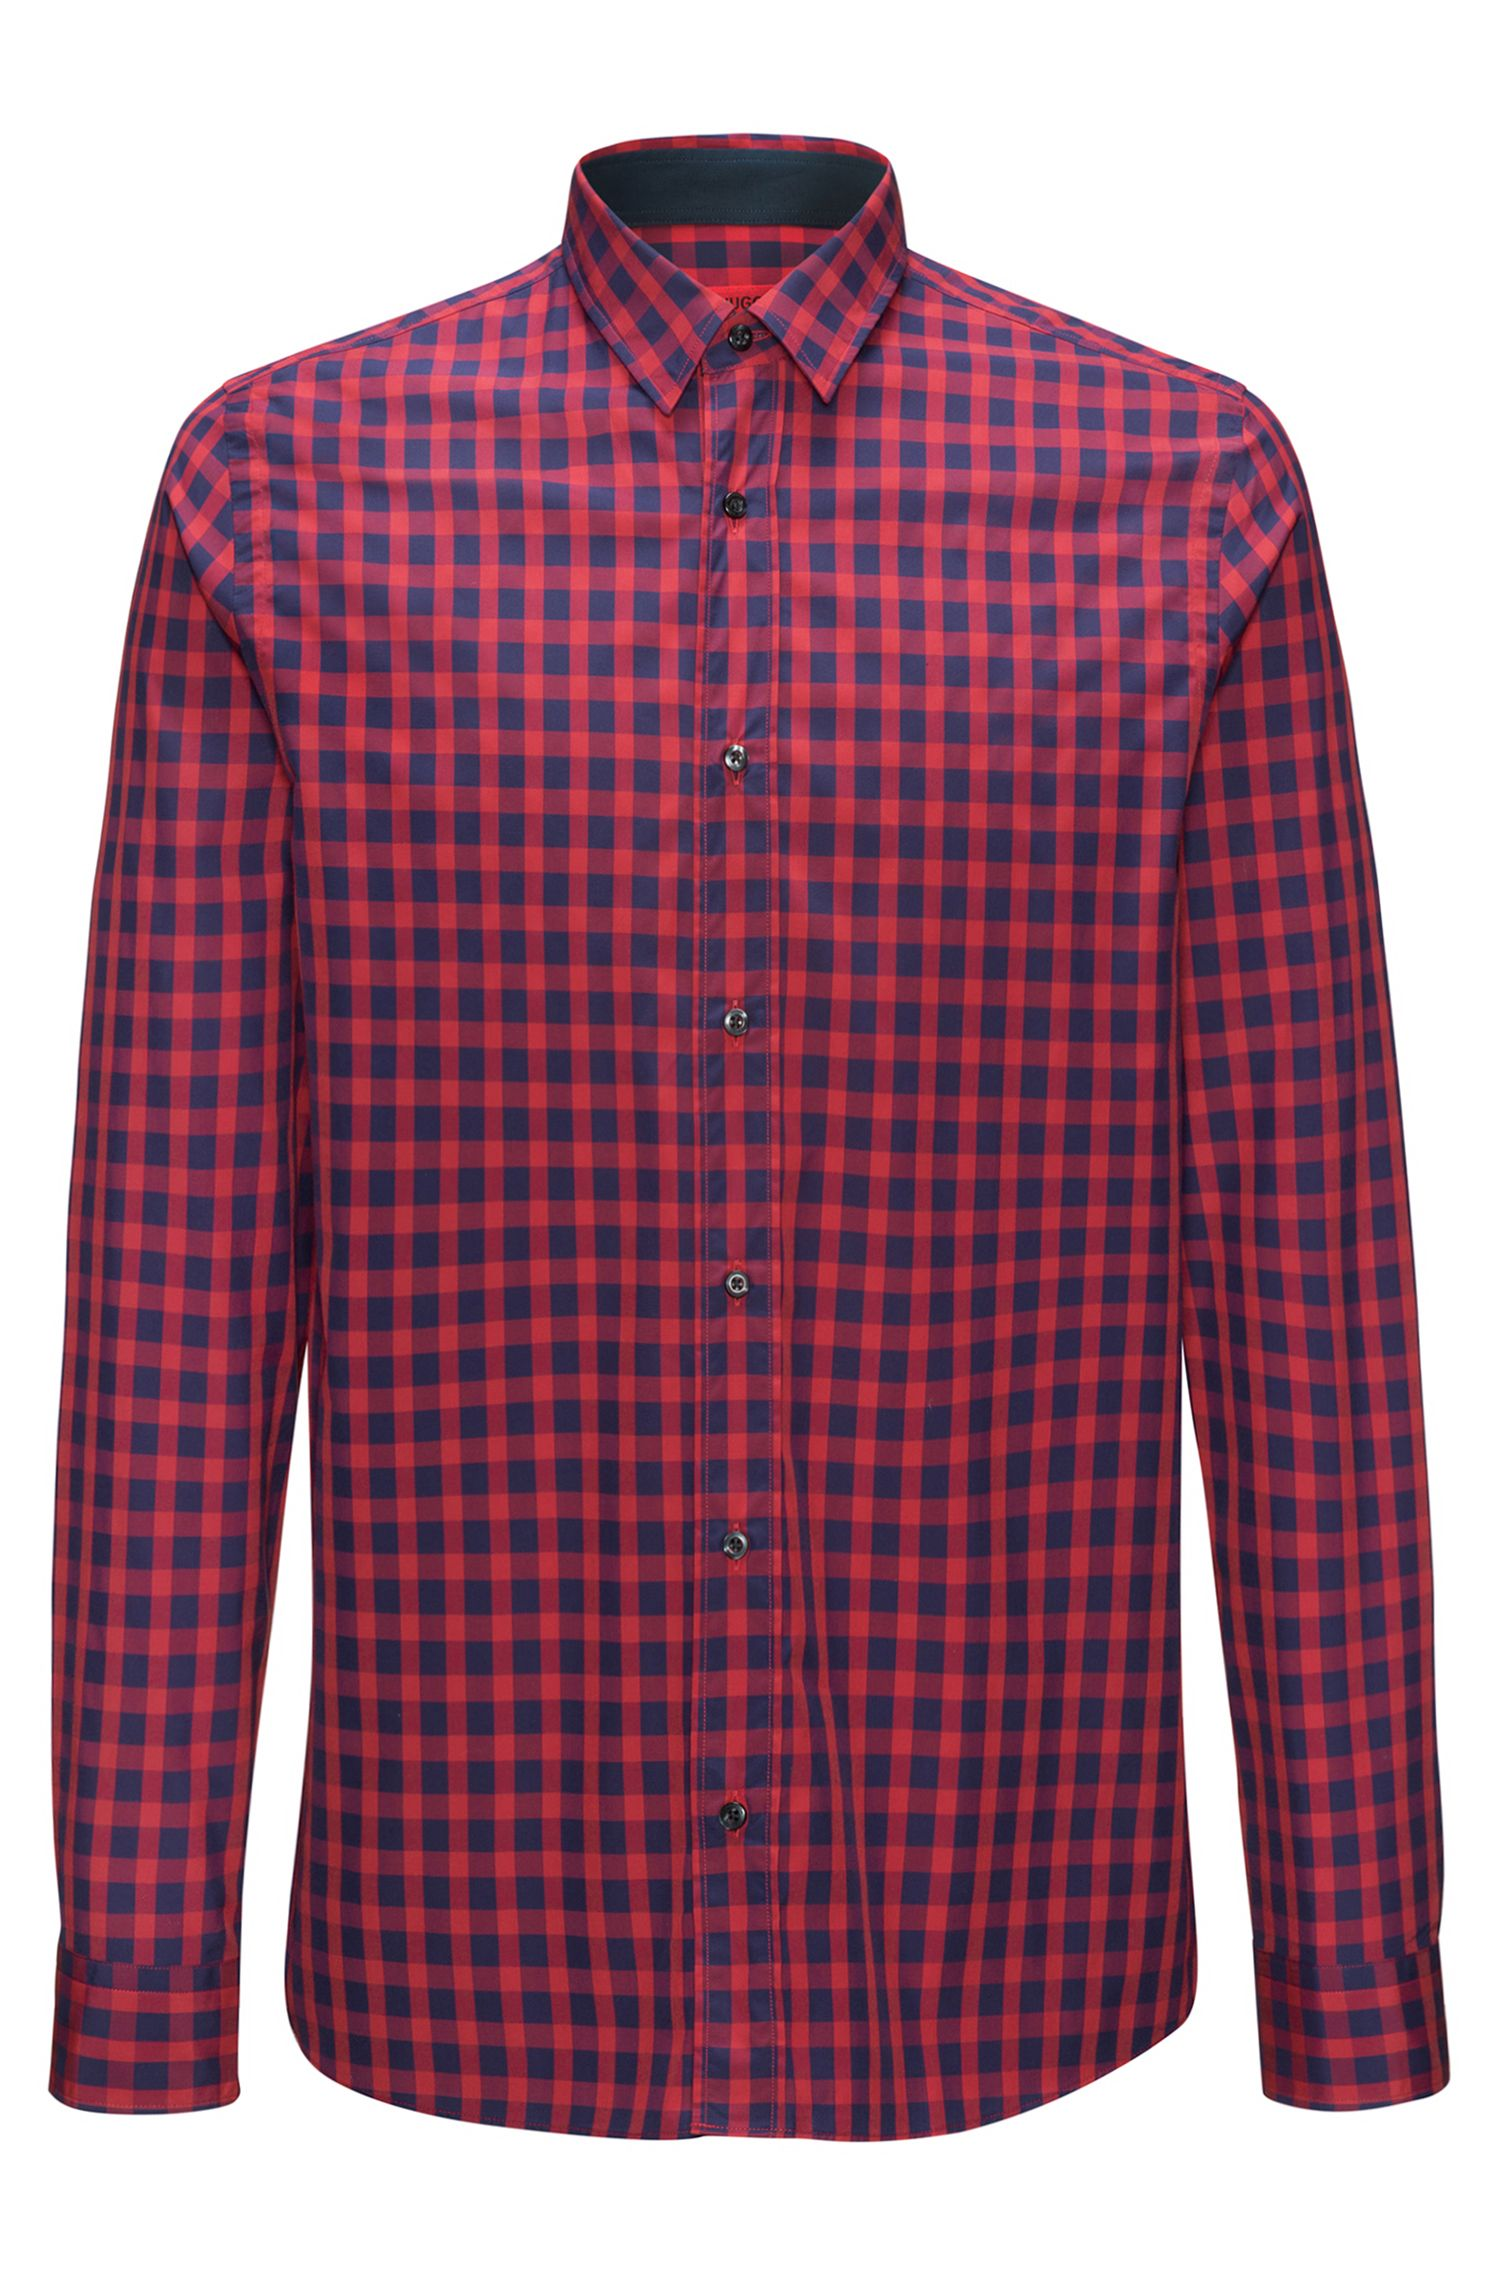 Gingham Cotton Sport Shirt, Straight Fit | Evory